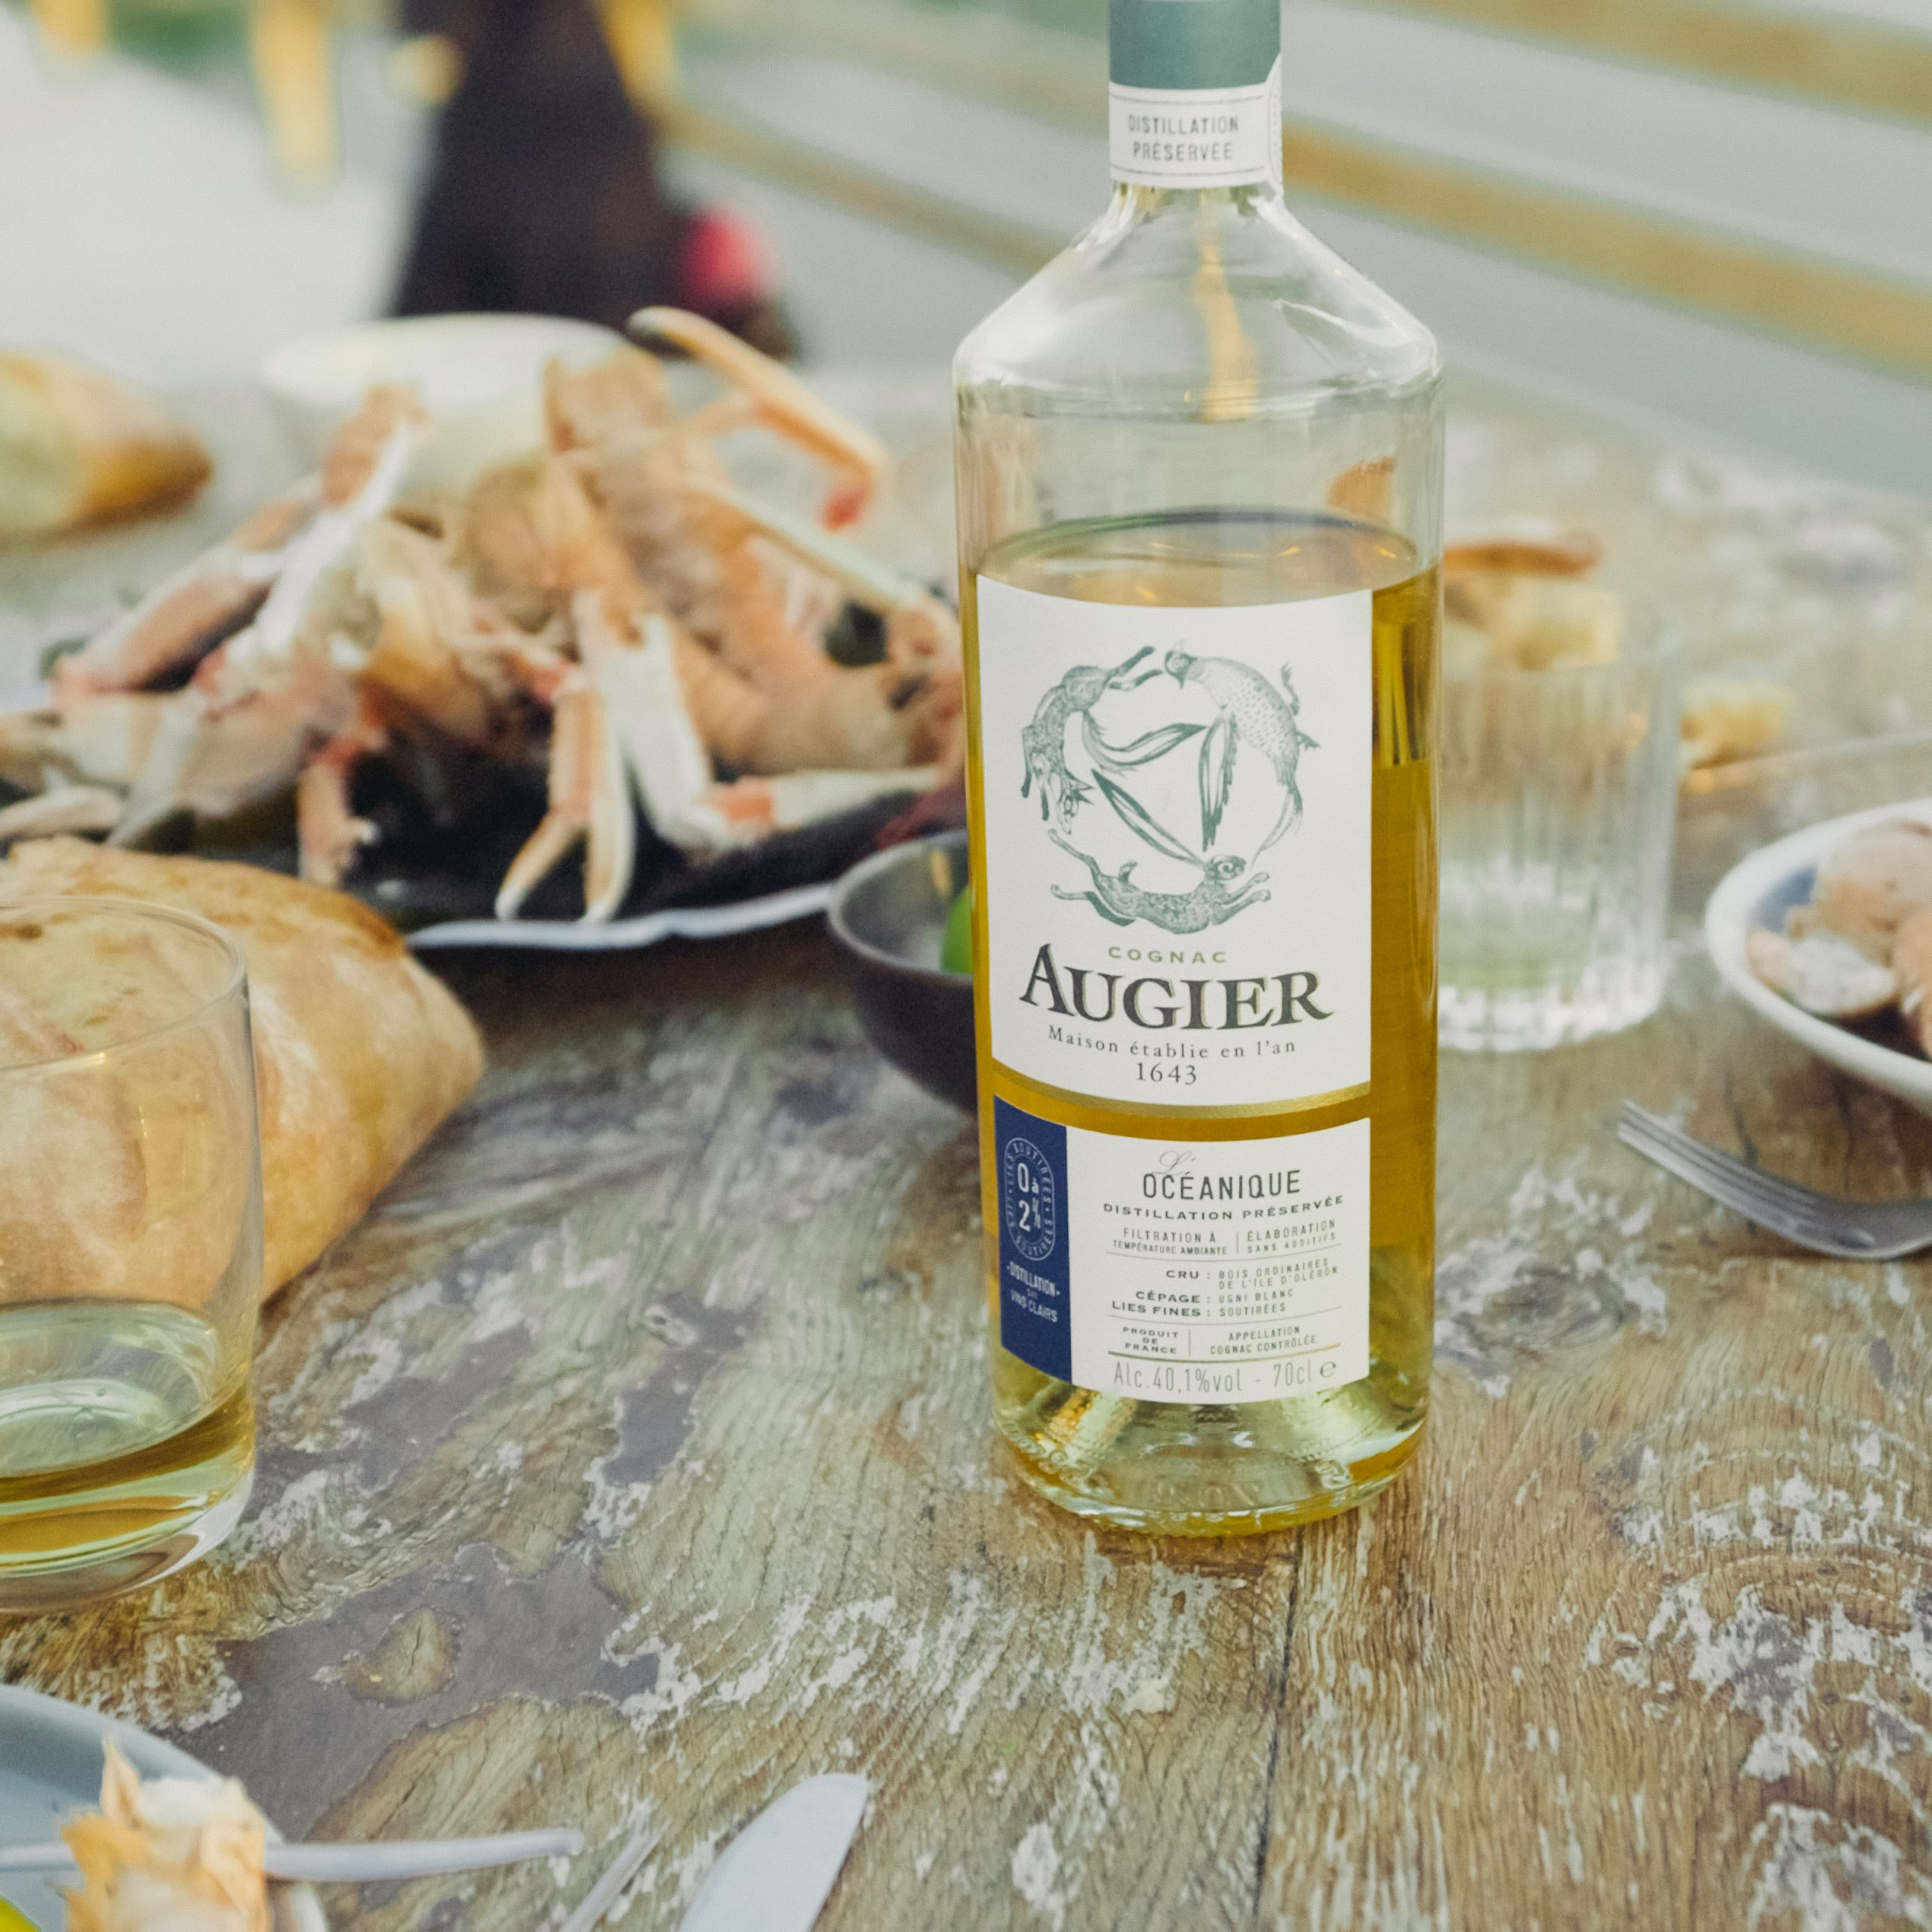 Crafted-by-the-ocean-augier-cognac-6